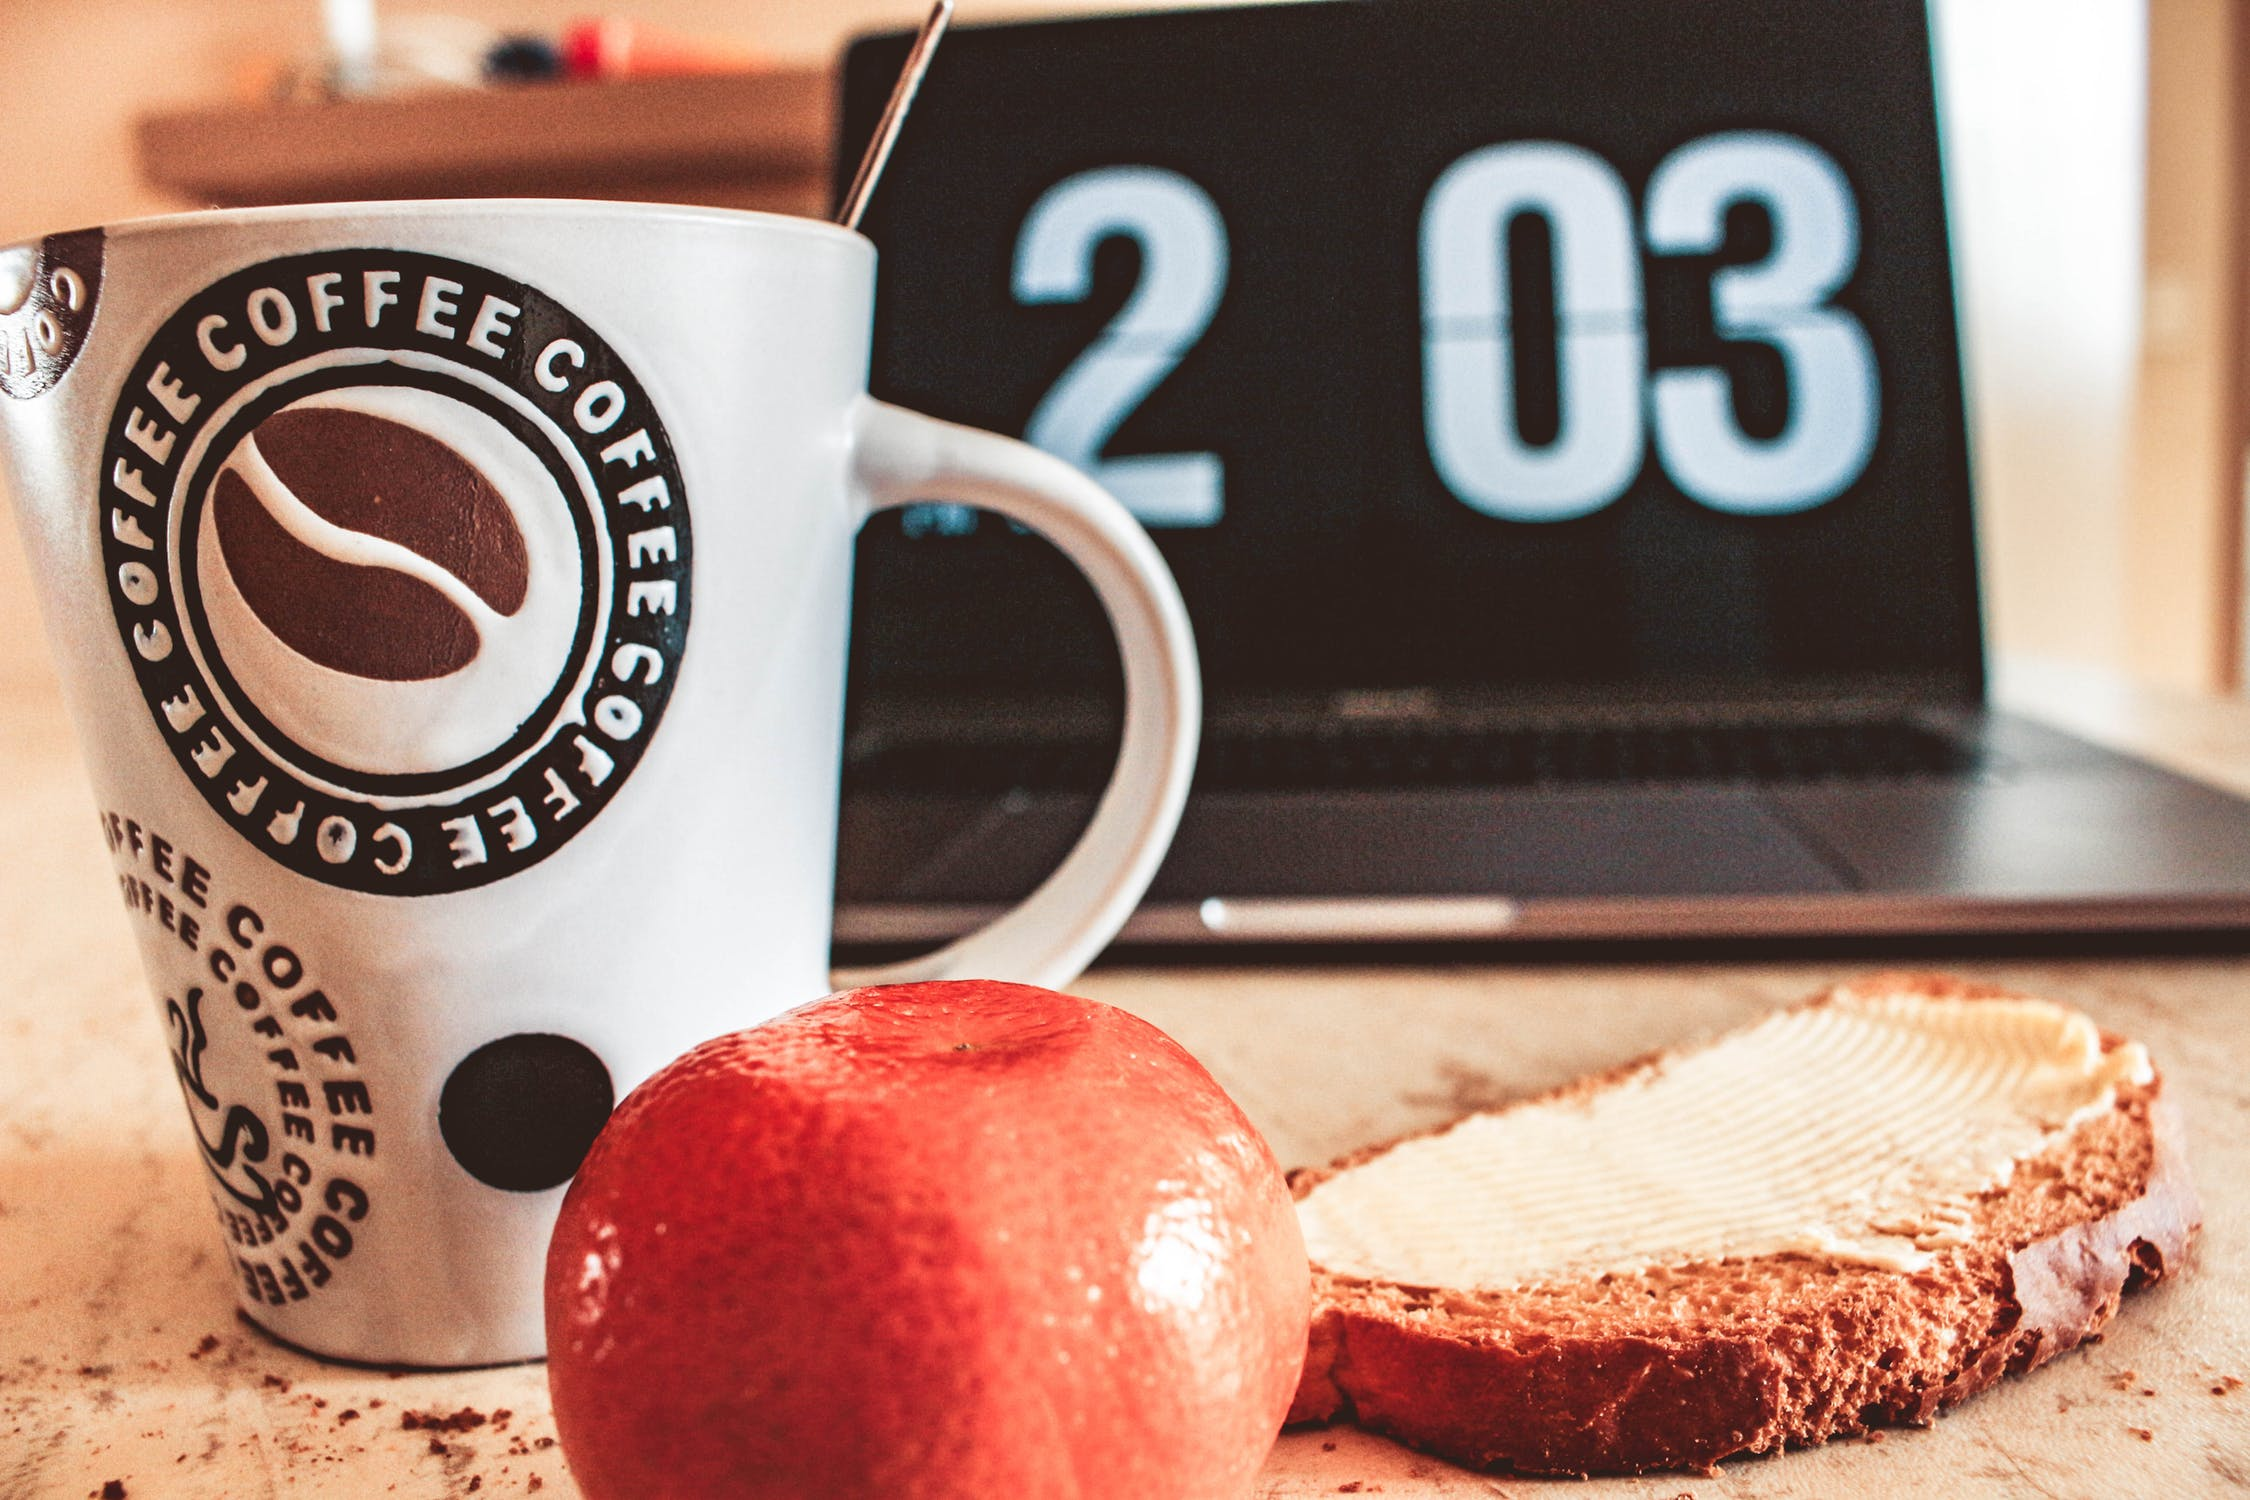 breakfast, productivity, bread, apple, coffee